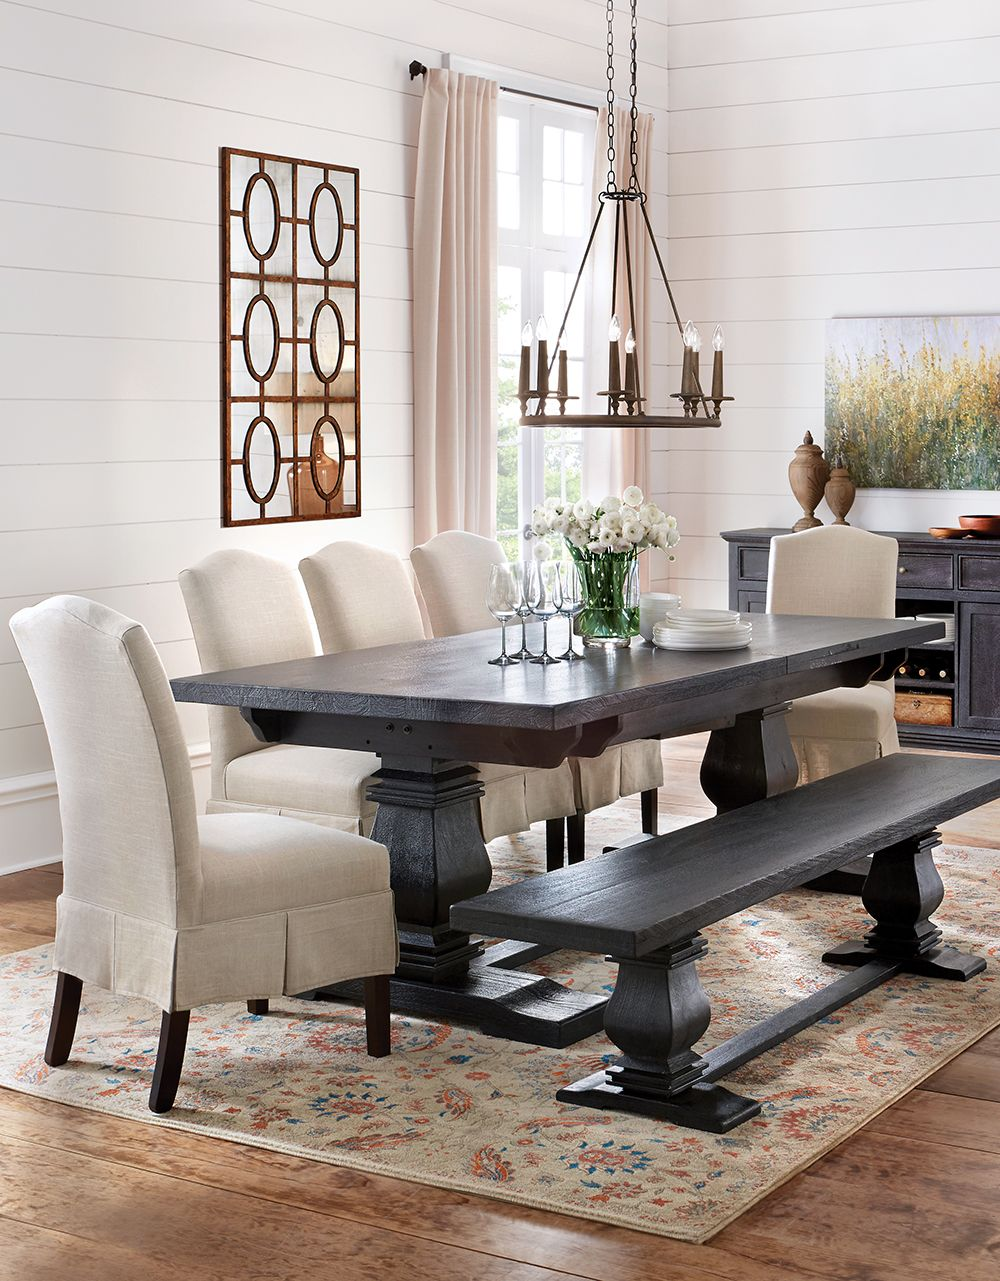 Upholstered Living Room Chairs Dress Up The Dining Table With Skirted Upholstered Dining Chairs